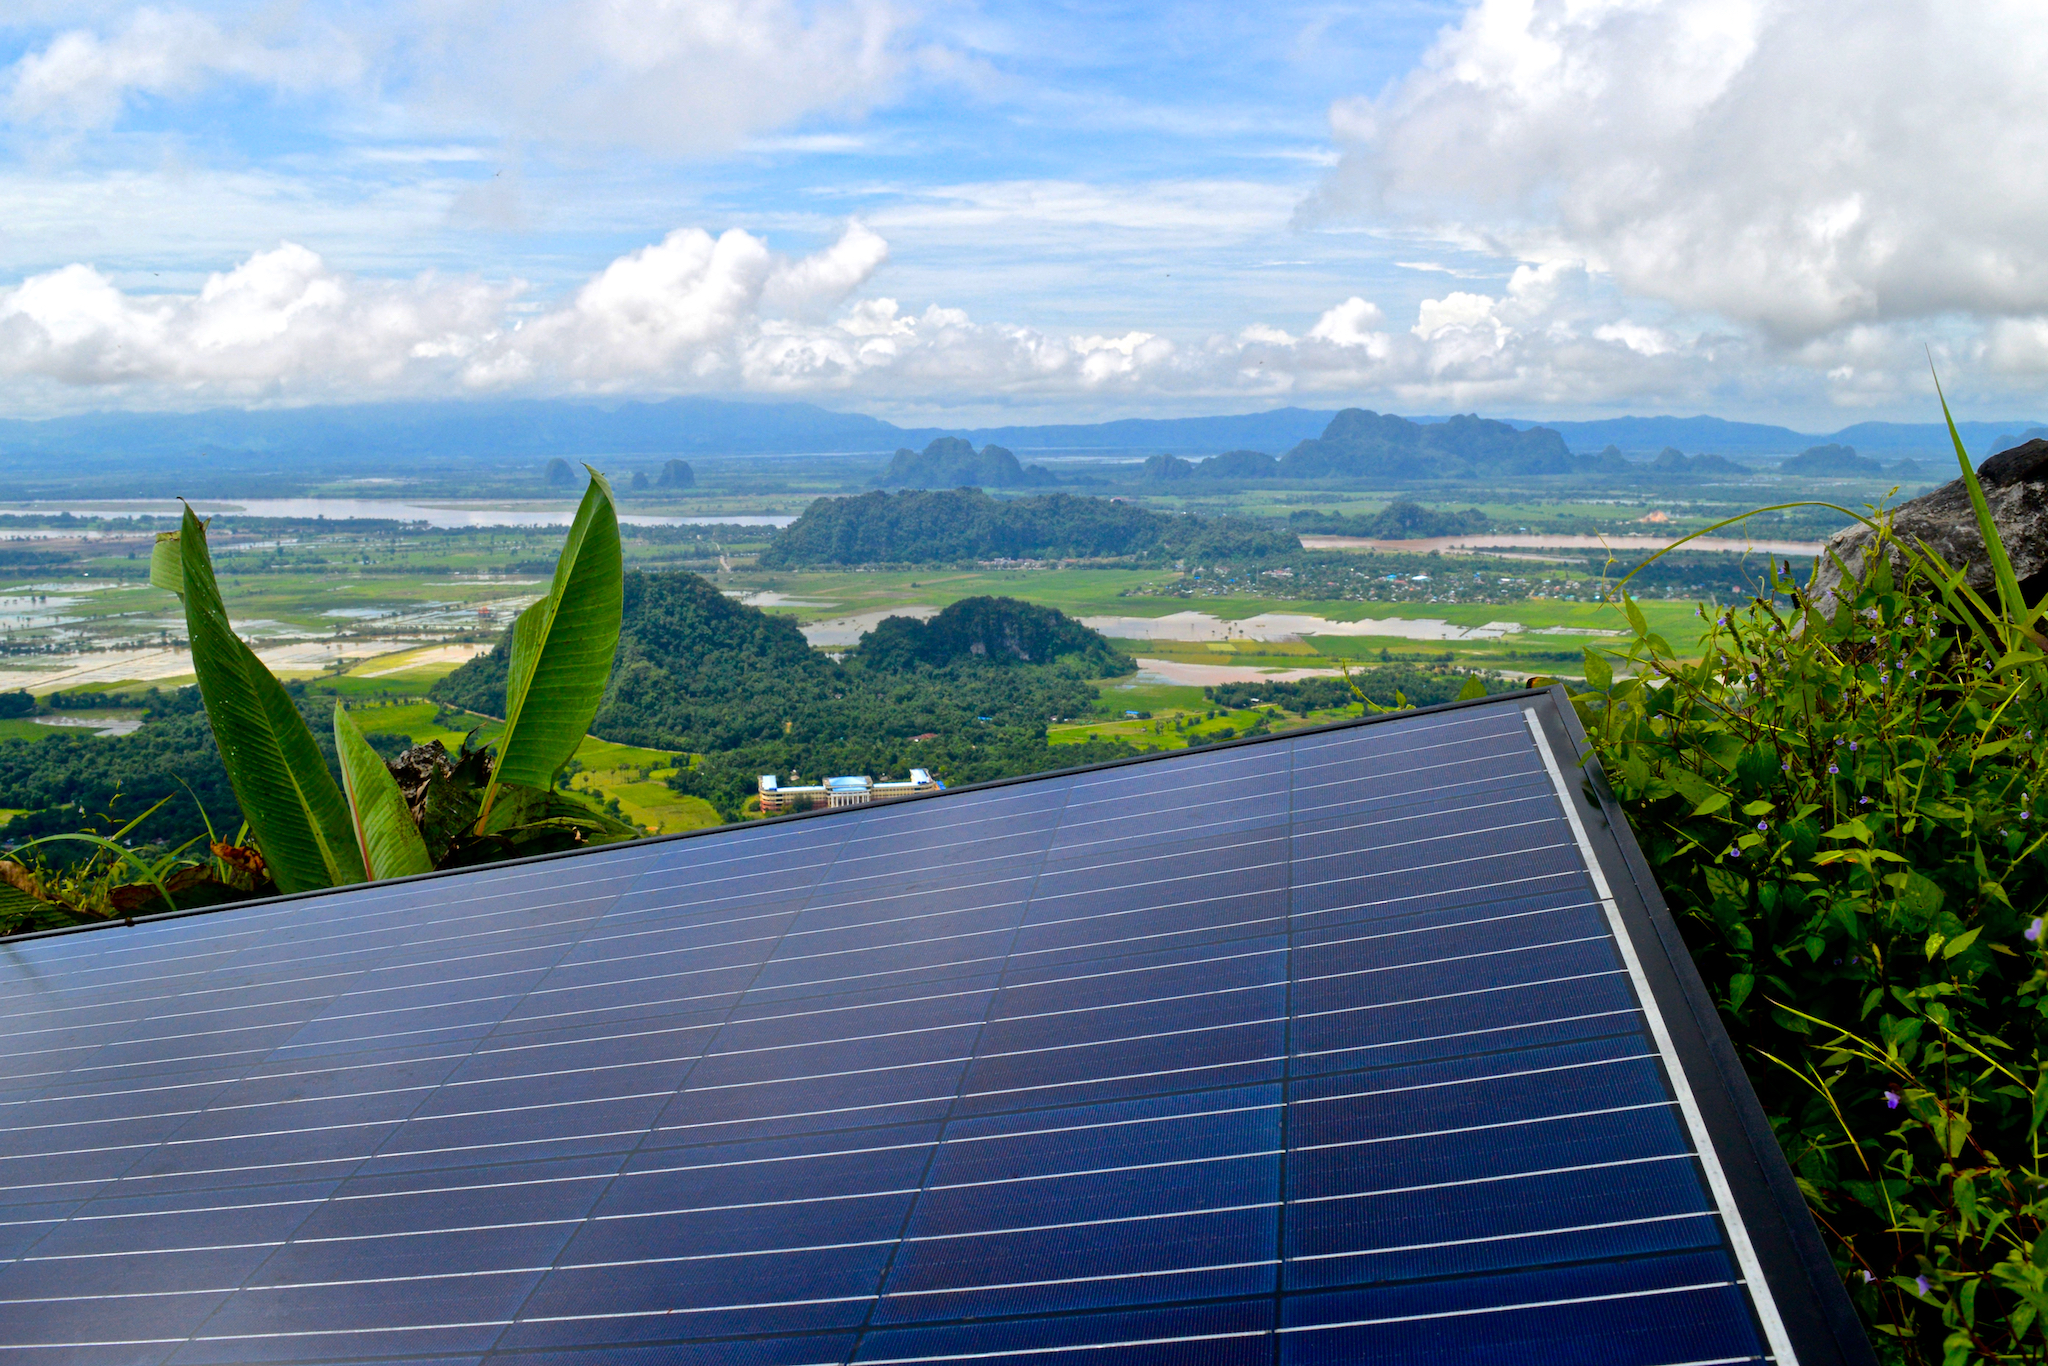 EAM Myanmar - -leading the way in solar power in Myanmar